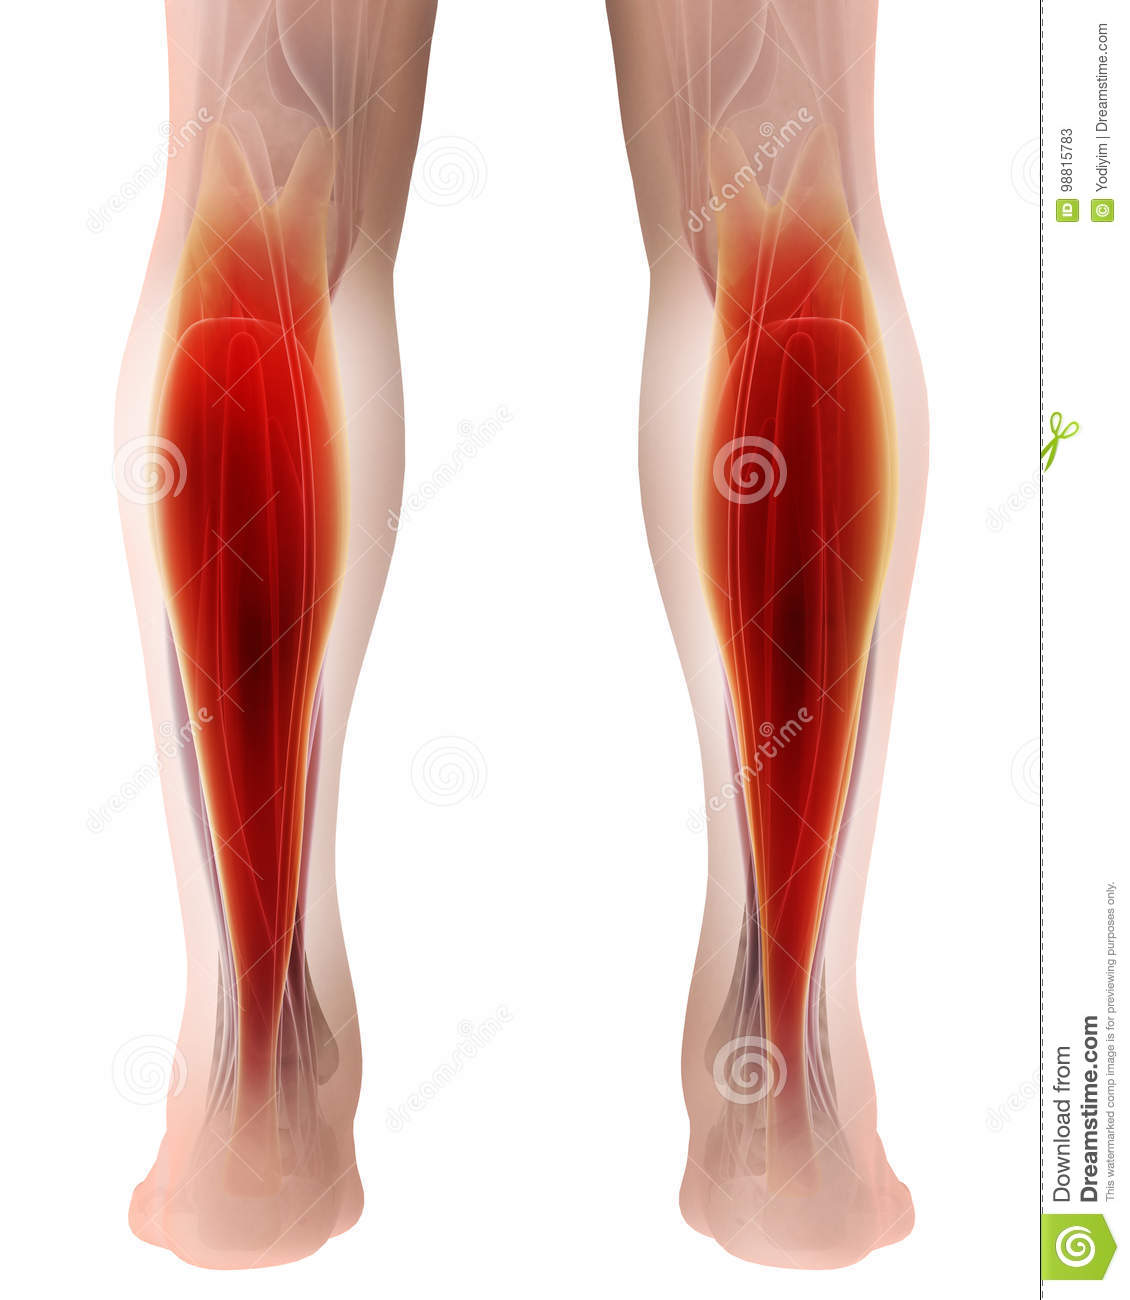 3d Illustration Of Gastrocnemius Part Of Legs Muscle Anatomy Stock